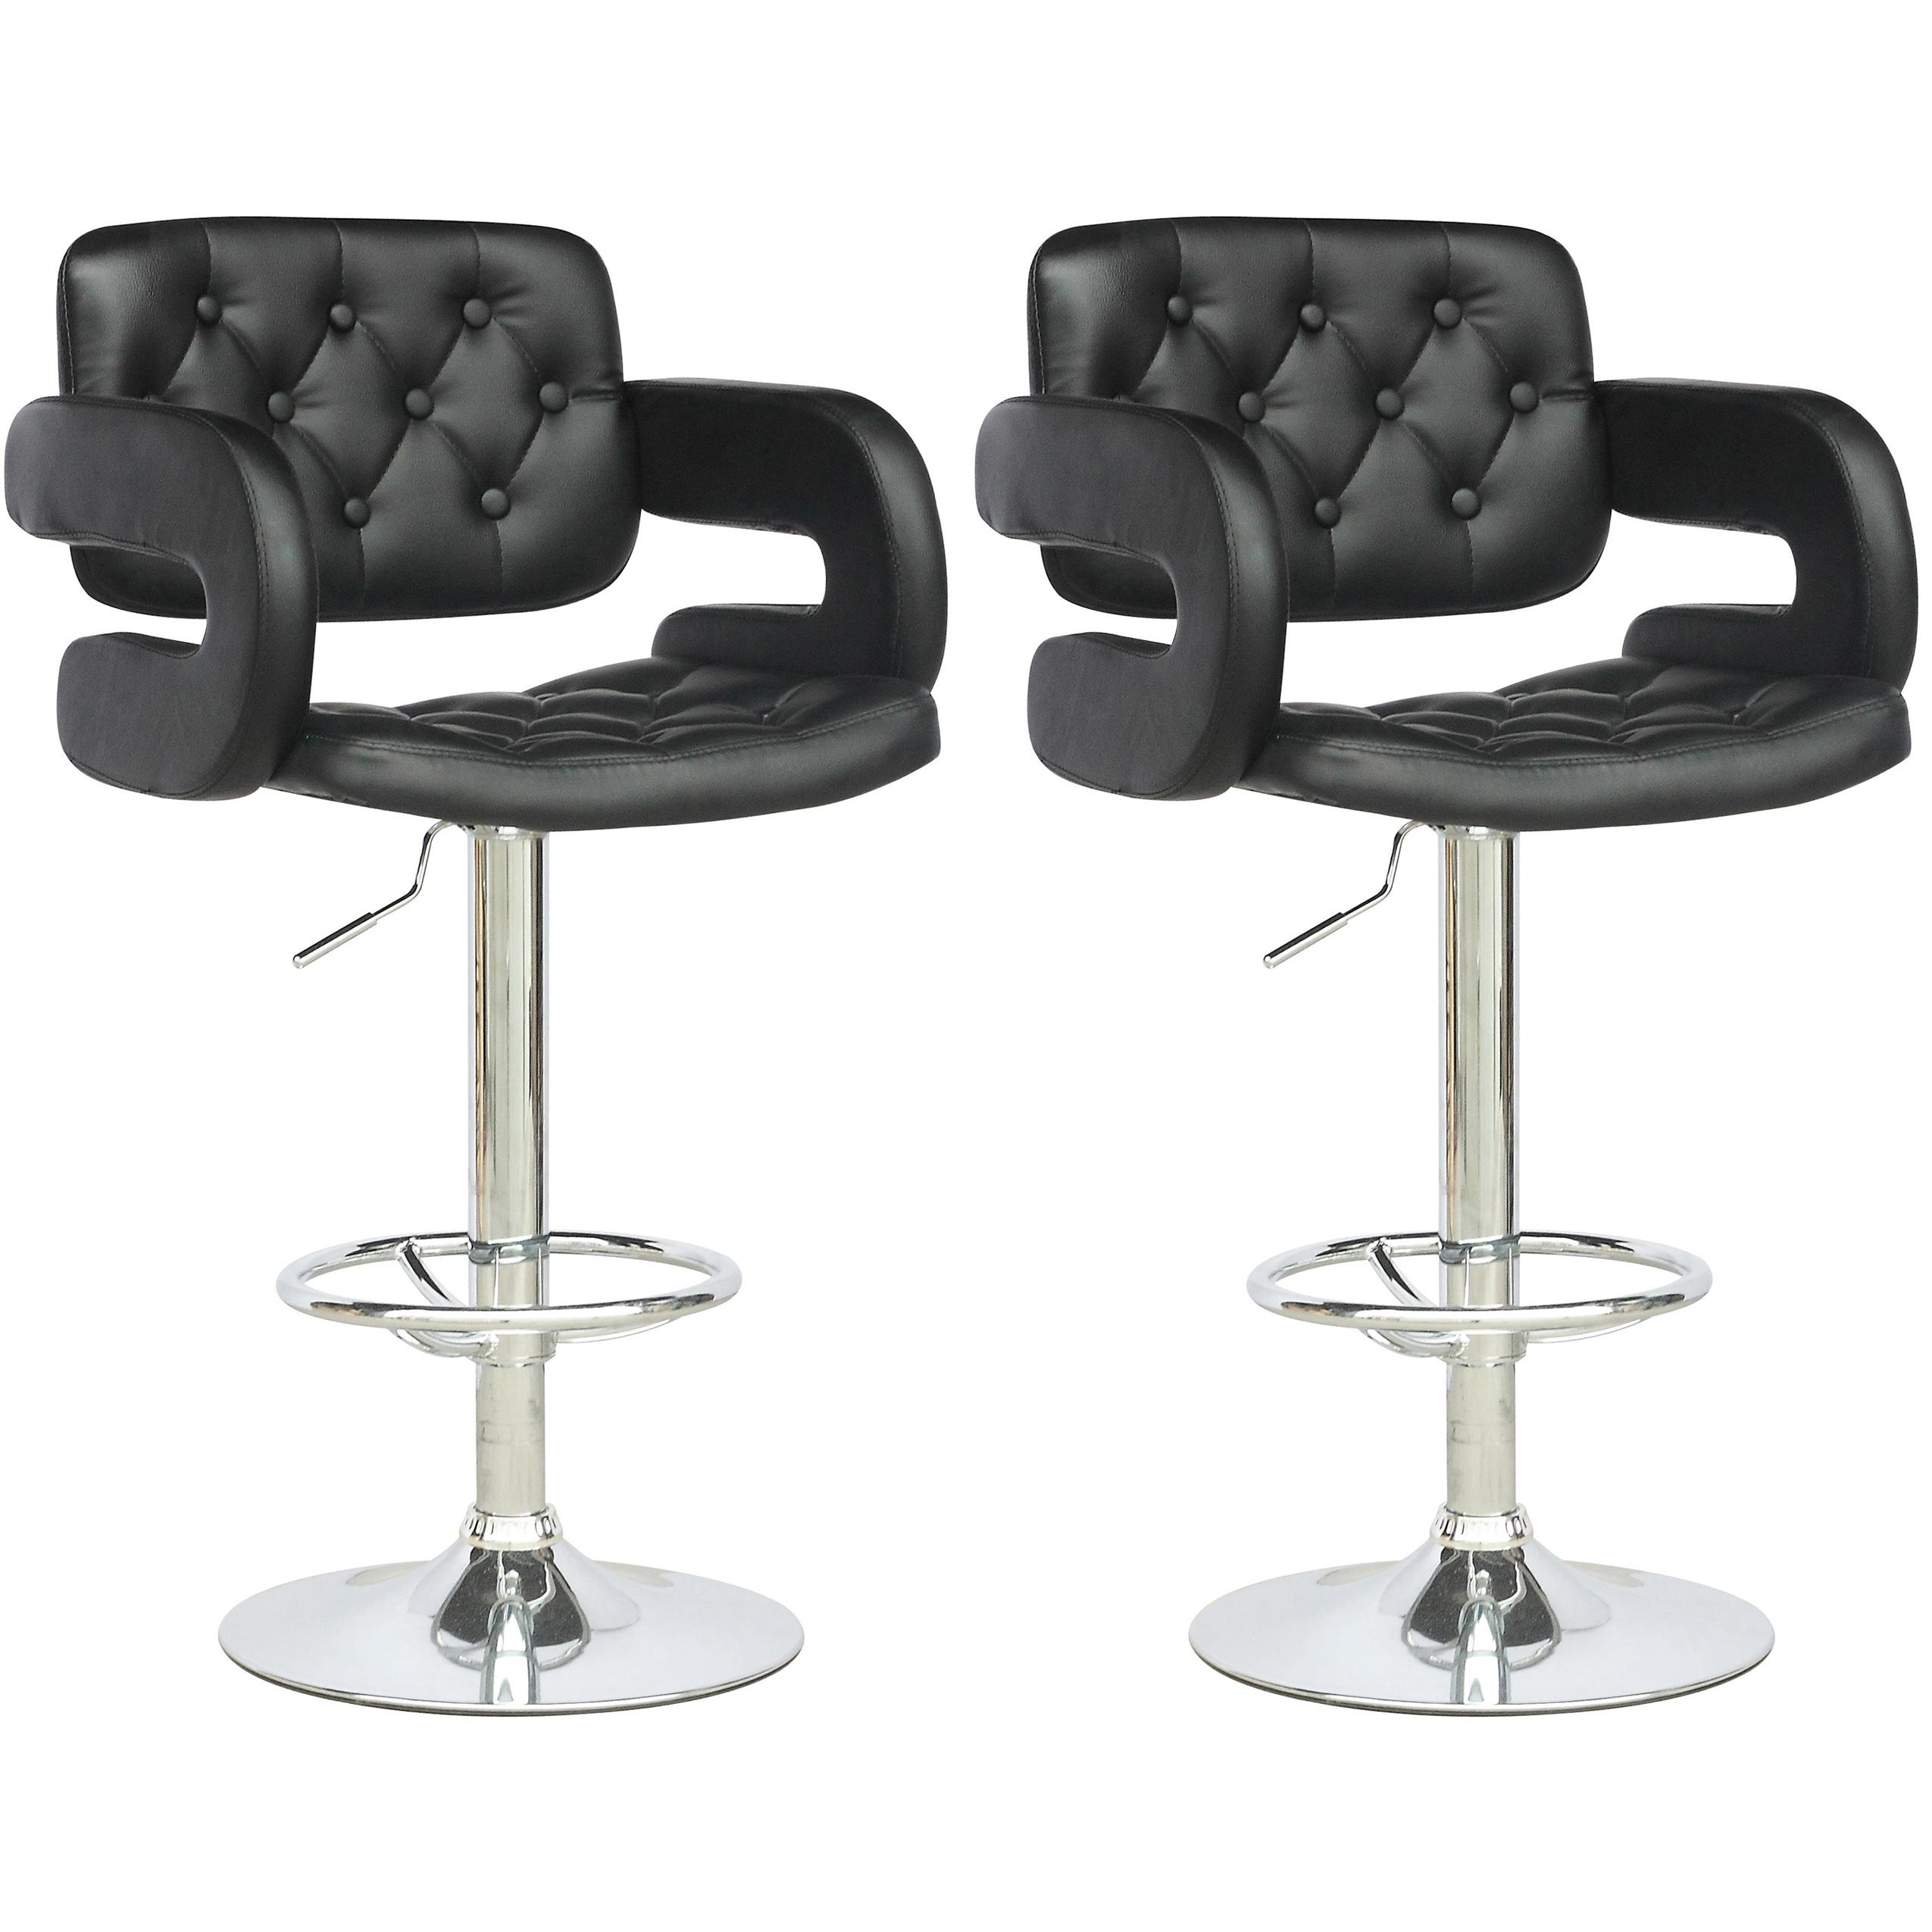 Corliving Dab 909 B Tufted Adjustable Bar Stool With